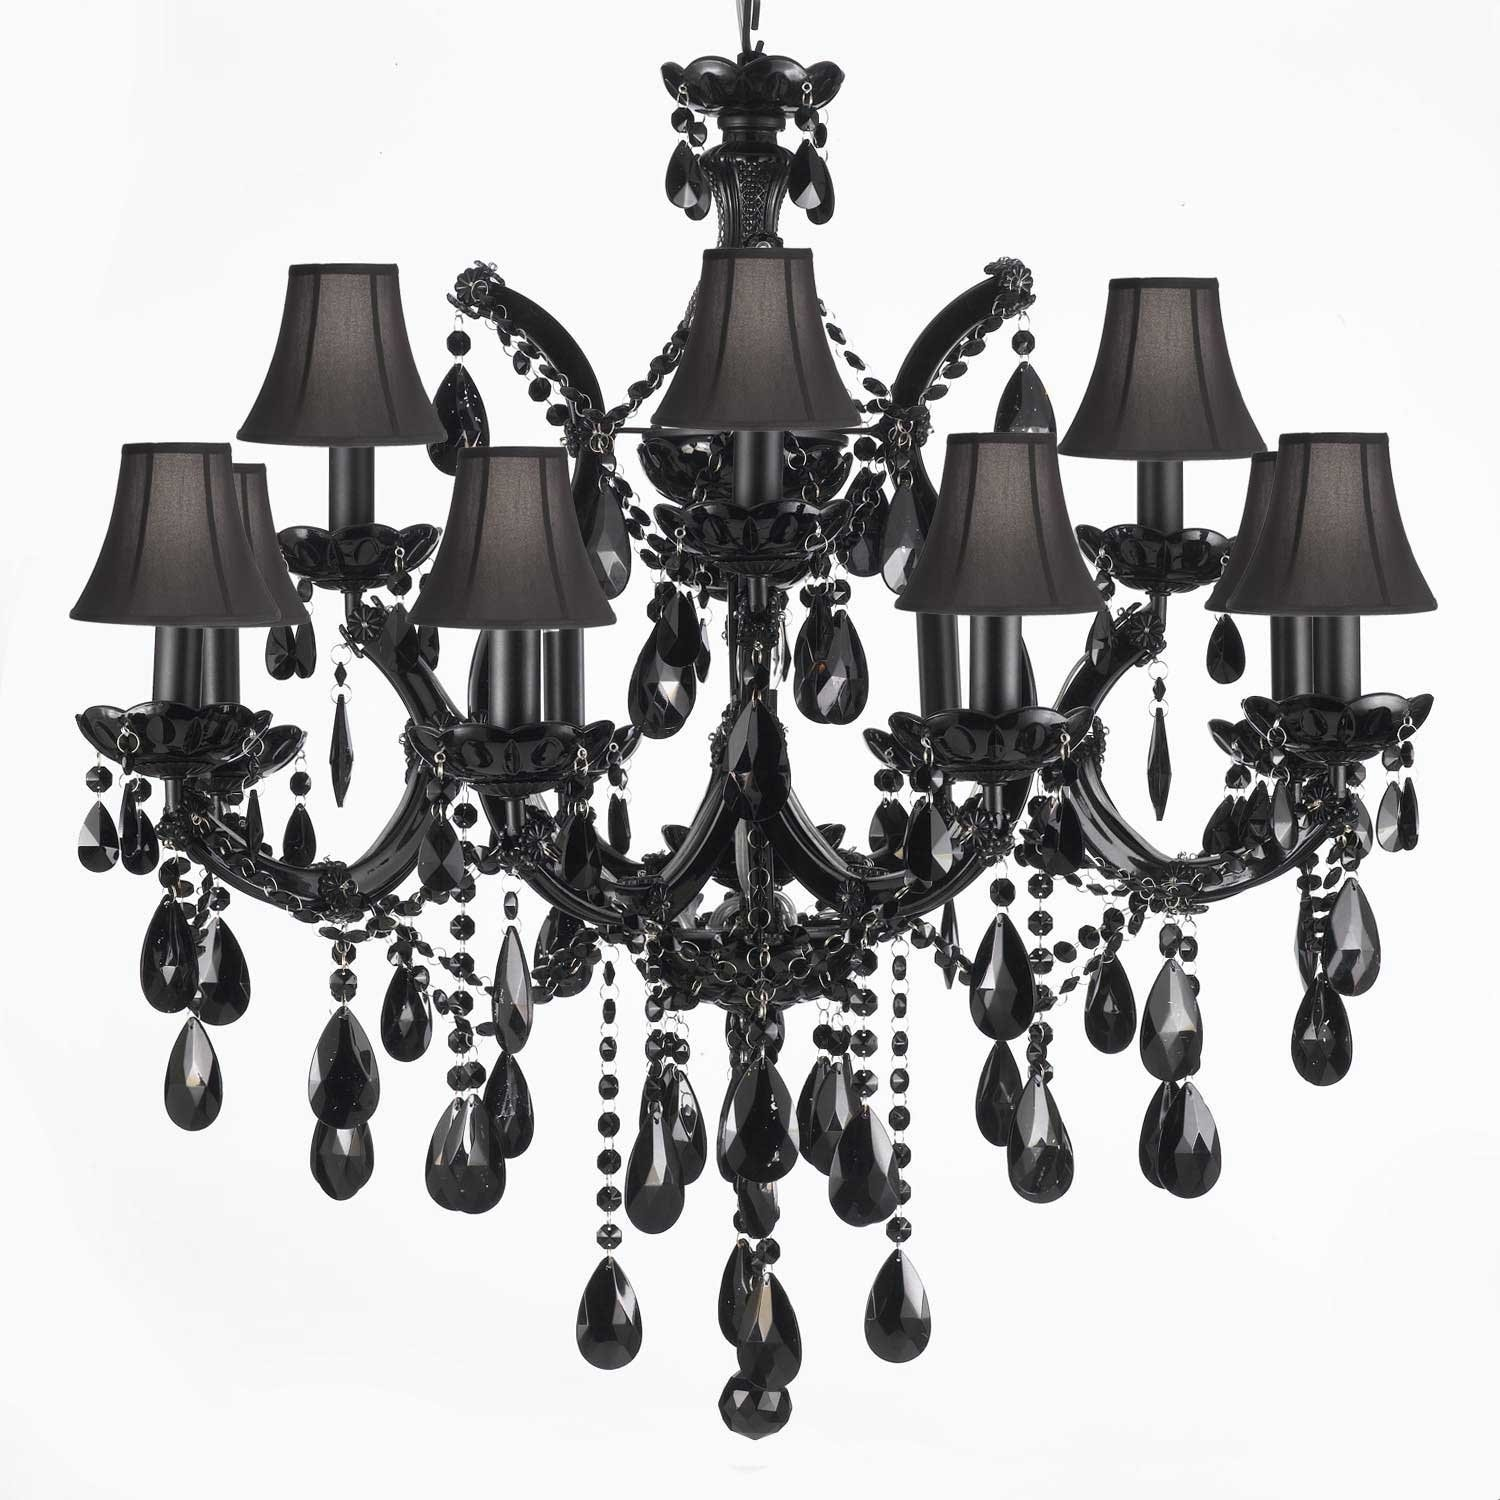 Jet Black Crystal Chandelier Lighting